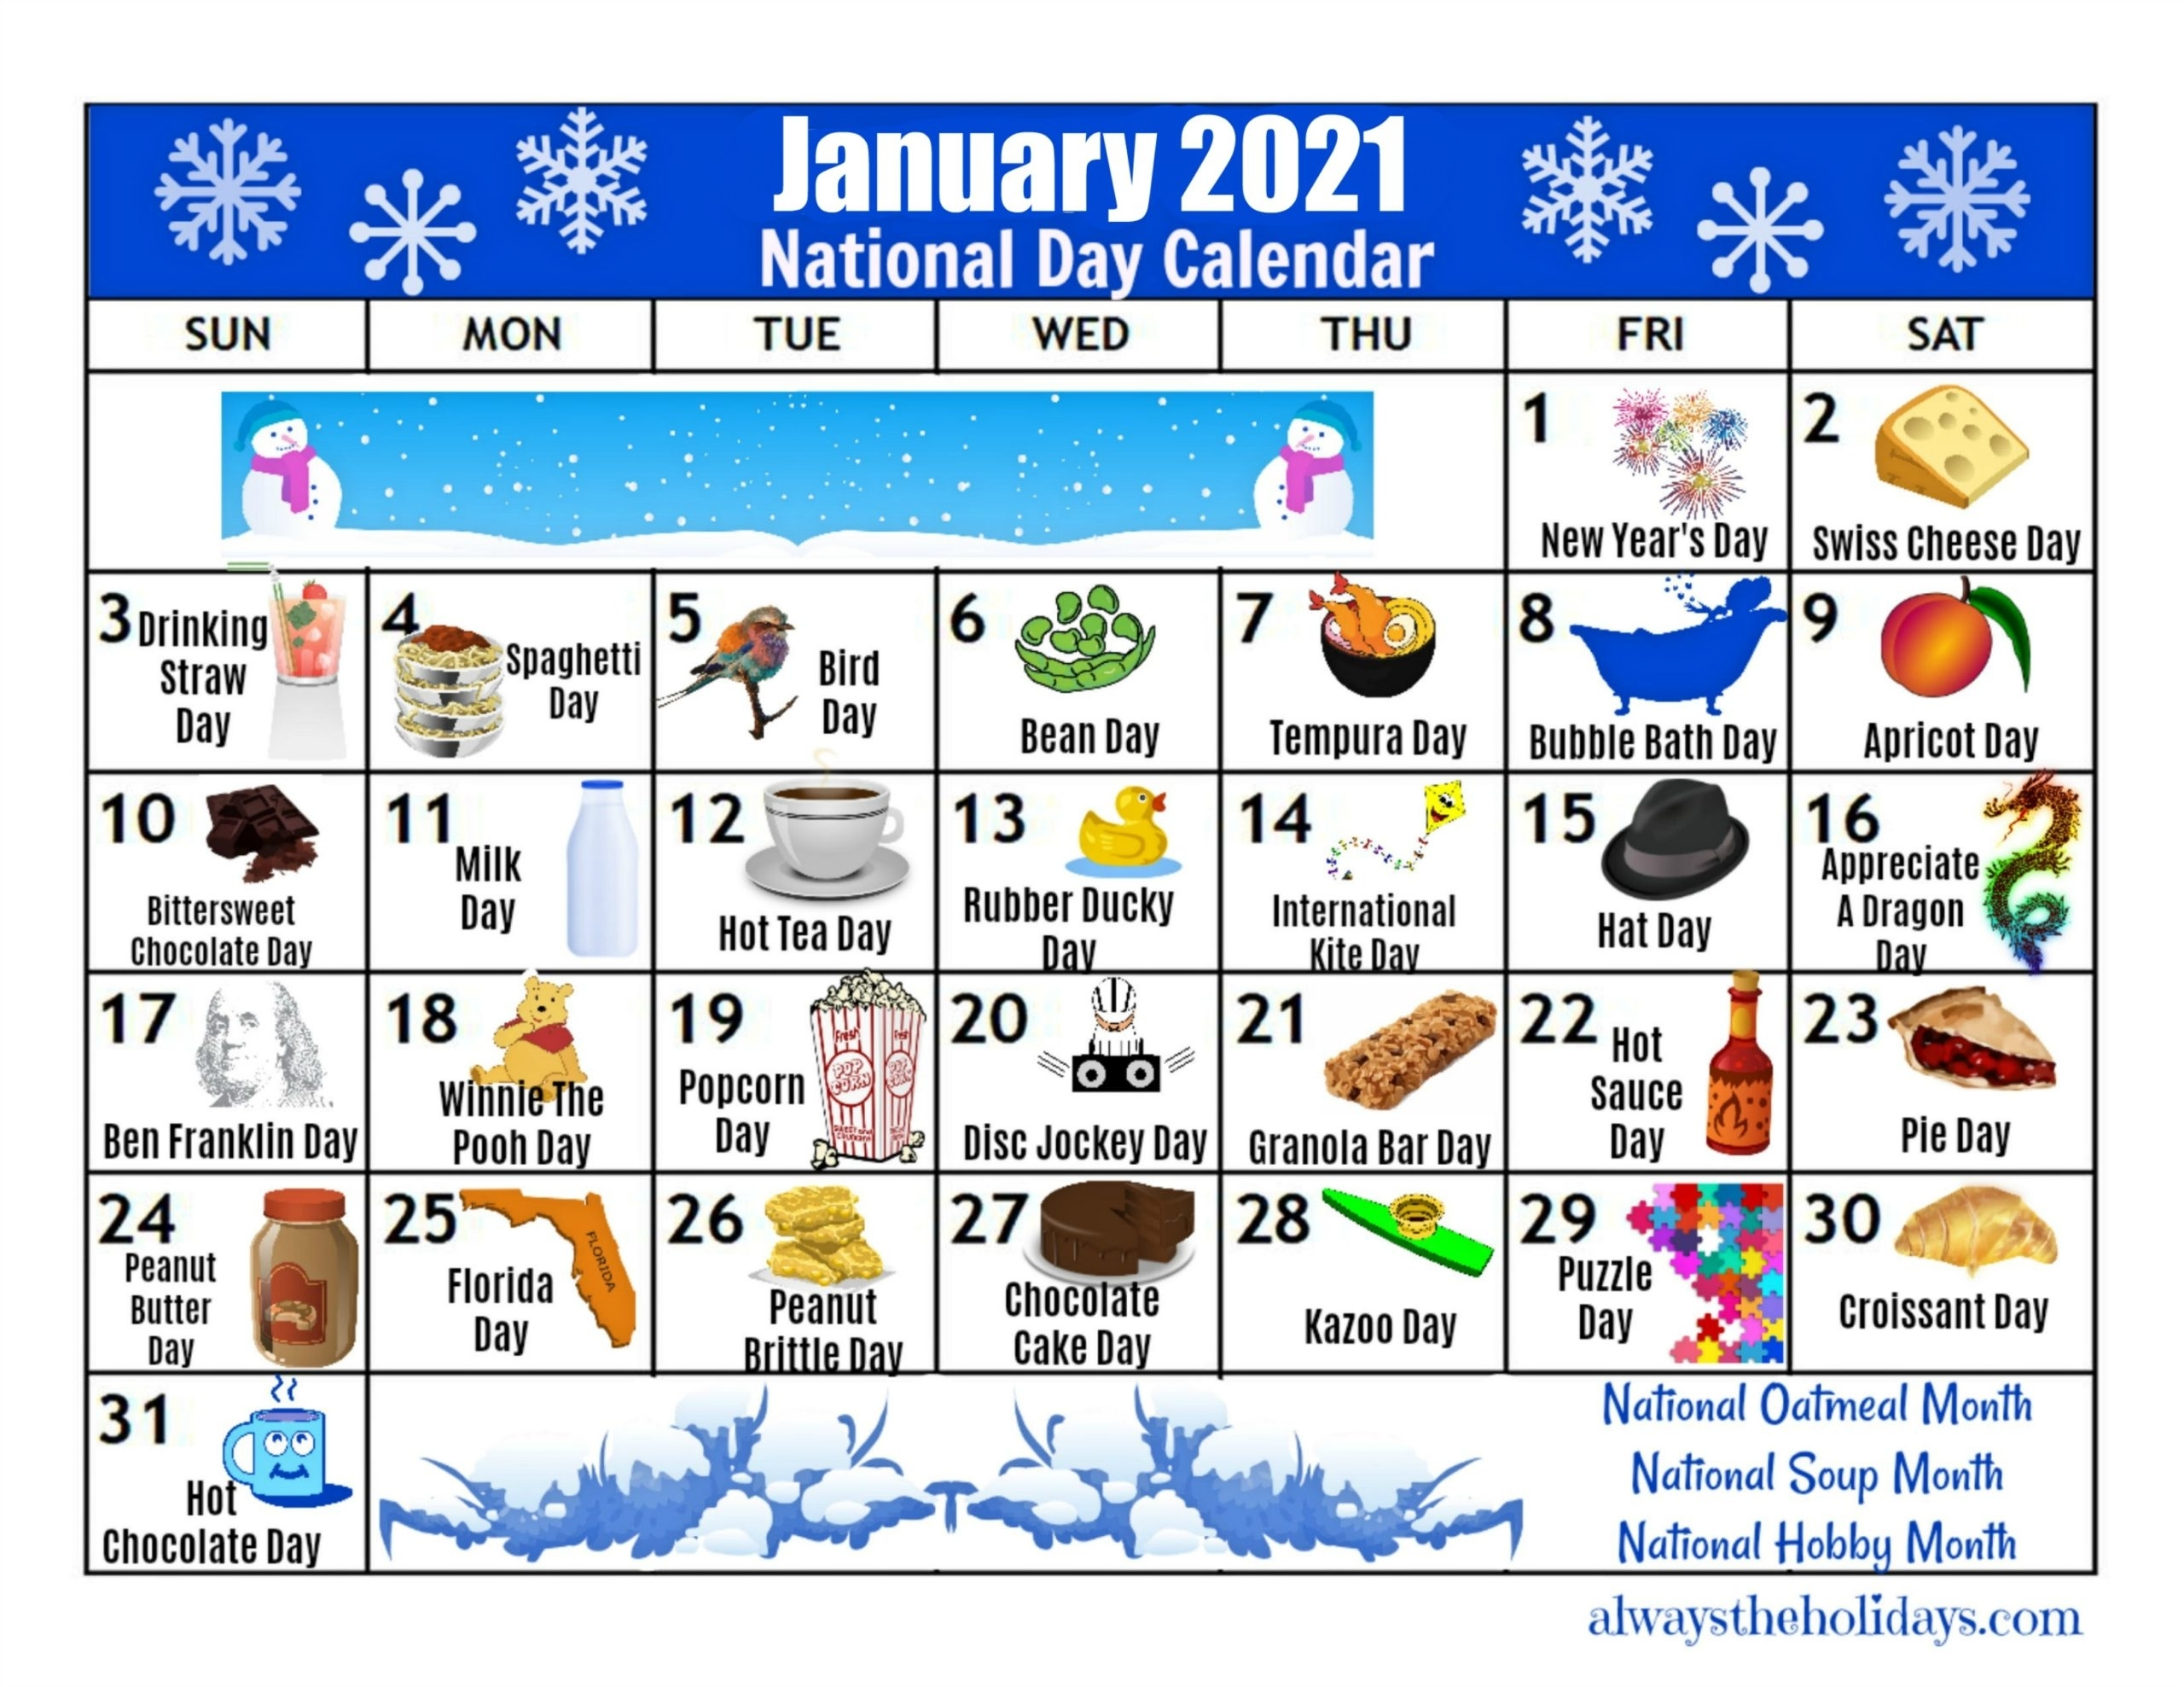 Collect July National Day Calendar 2021 Printable